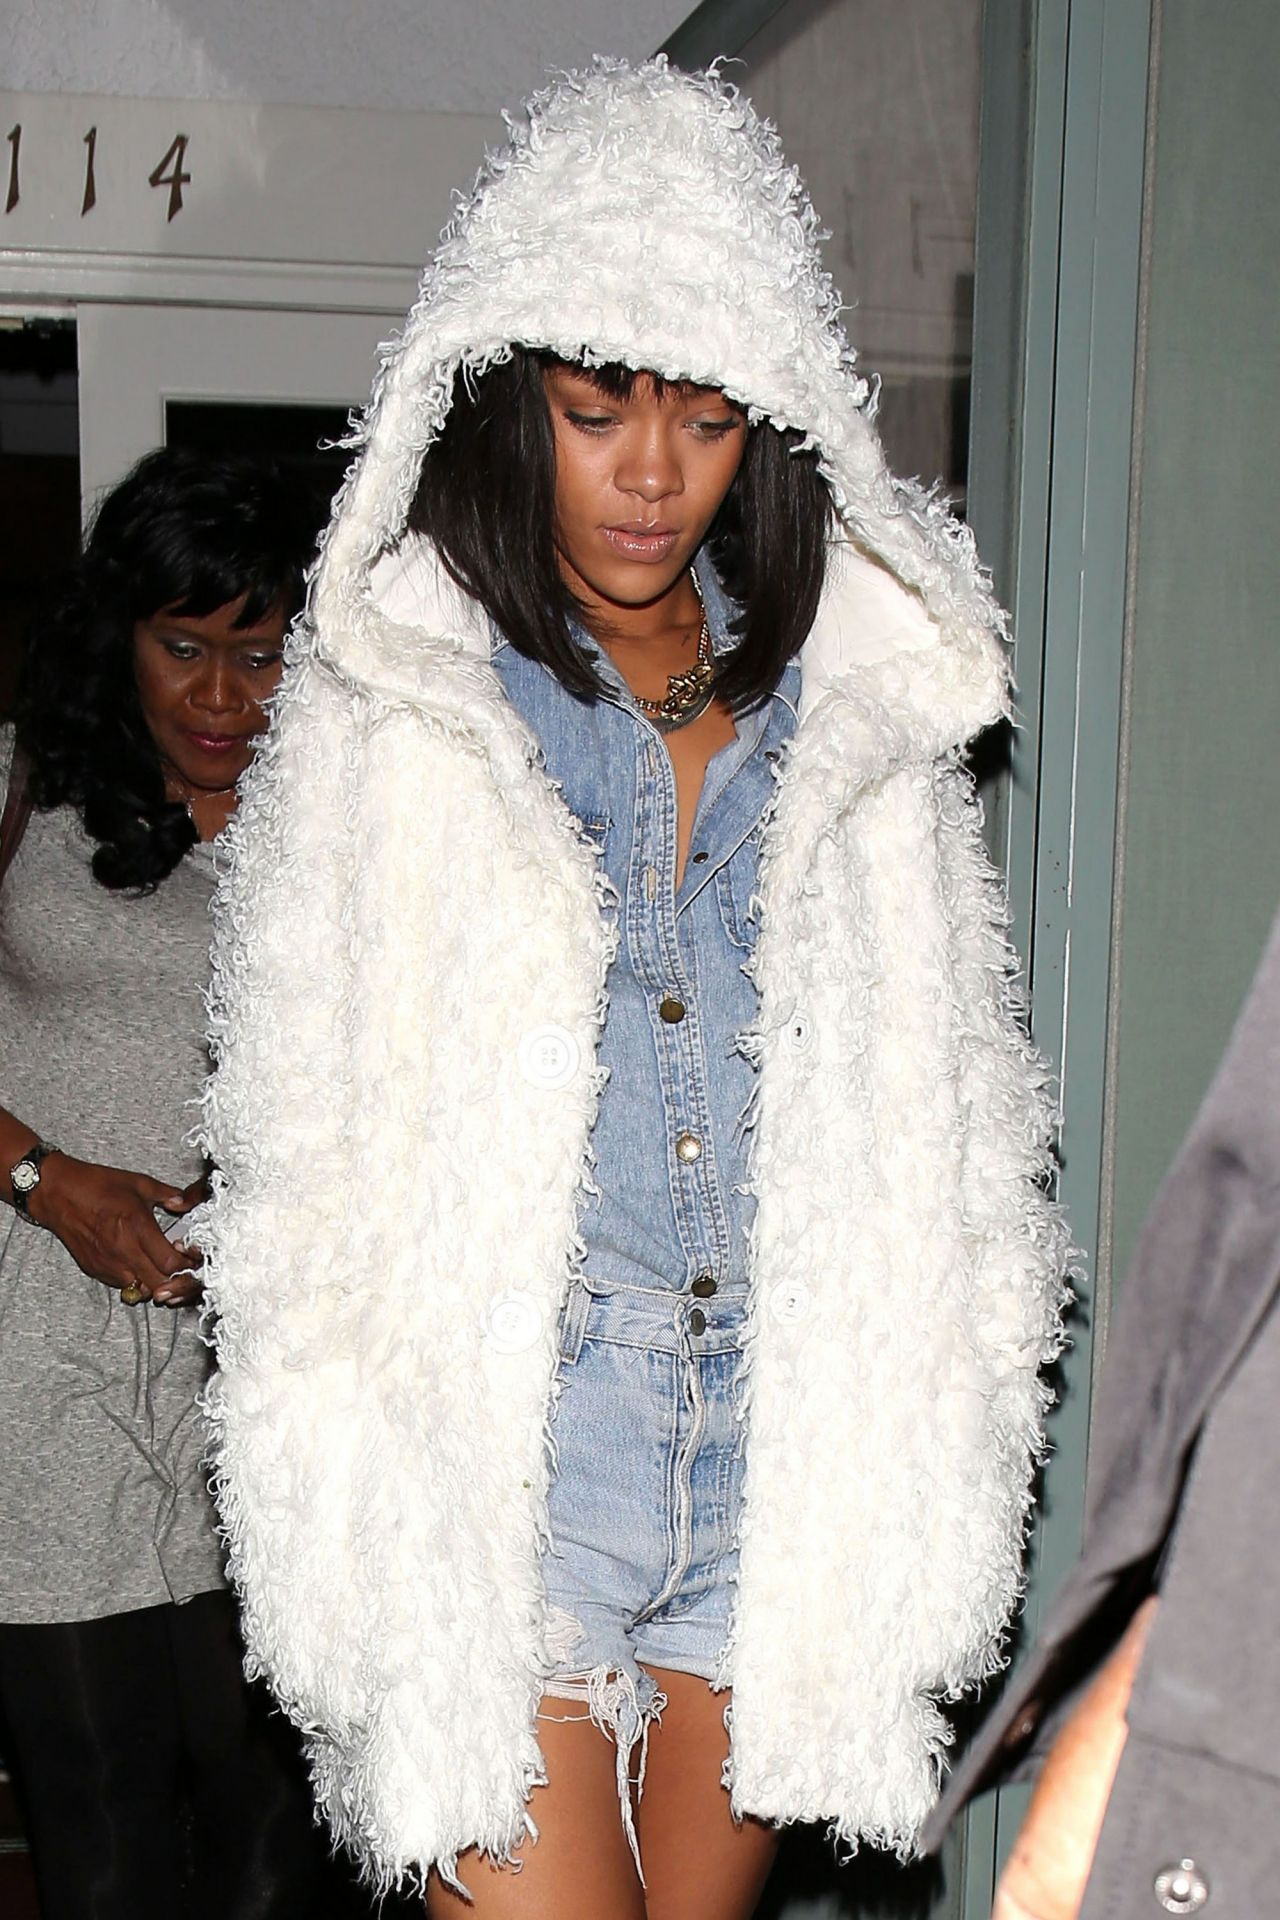 Rihanna - Leaving the Giorgio Baldi Restaurant With Her Mom - Santa Monica, February 2014